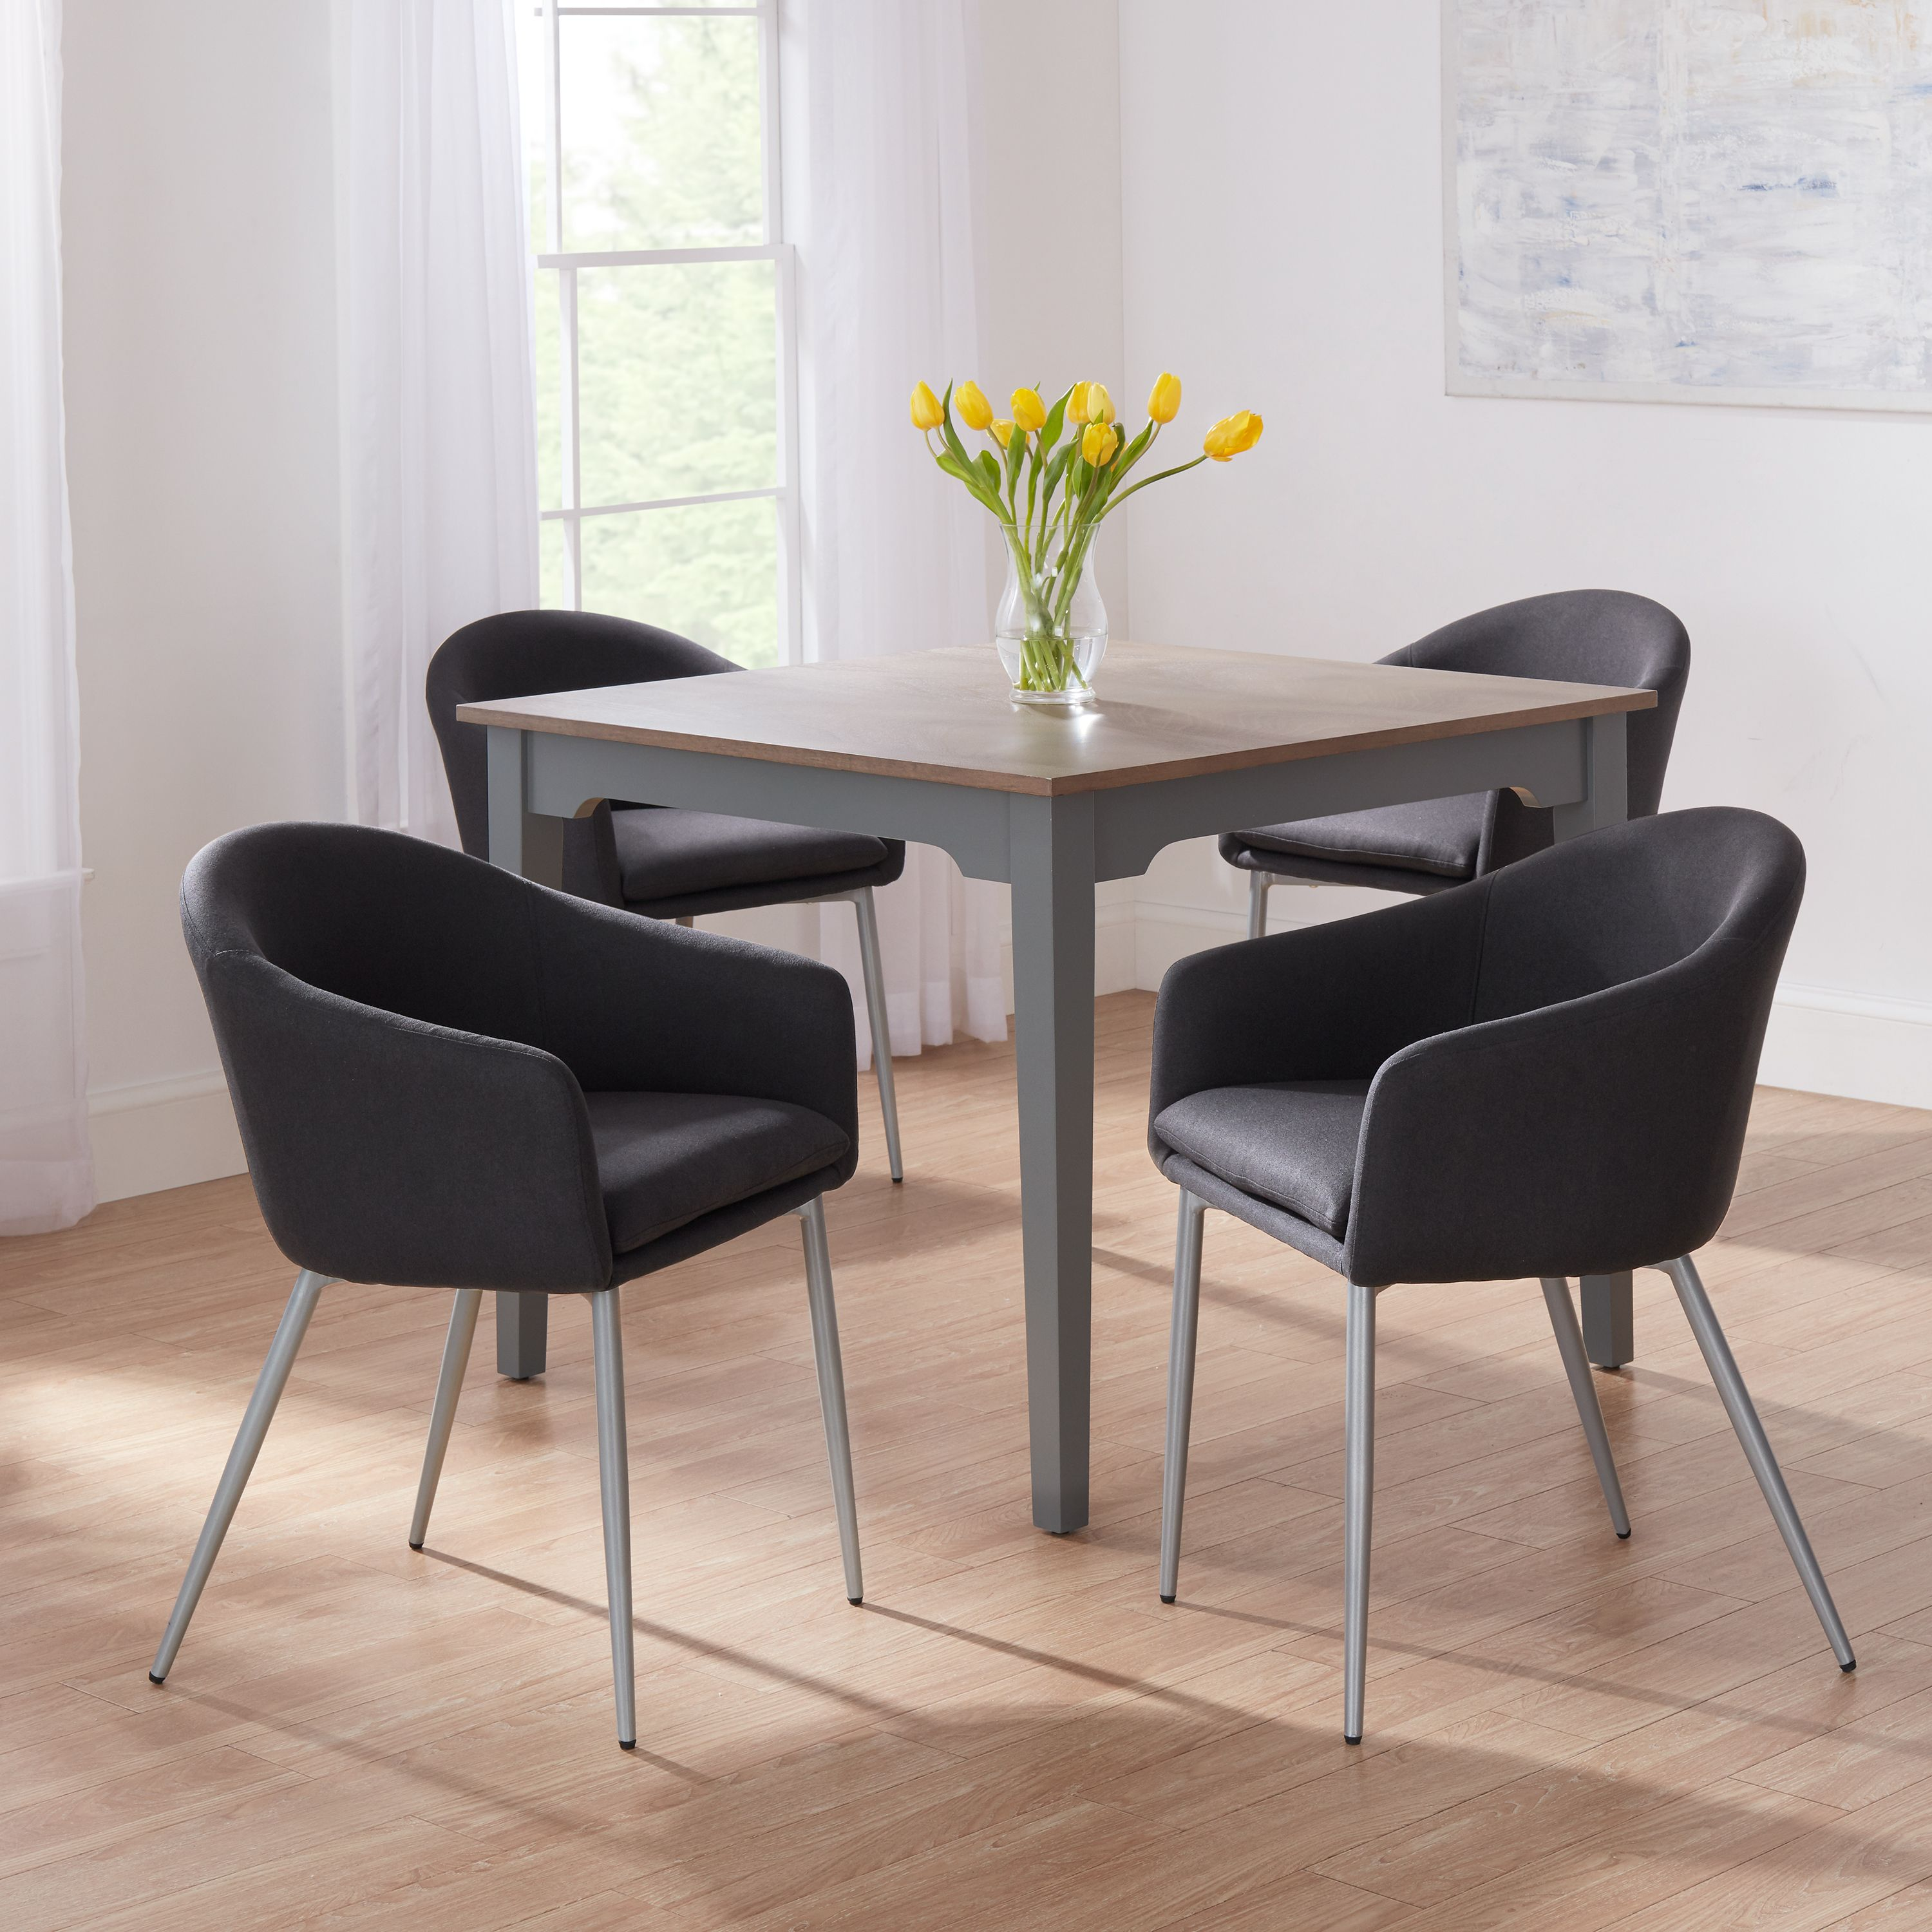 Better Homes & Gardens Eve Dining Chair, Set of 4, Multiple